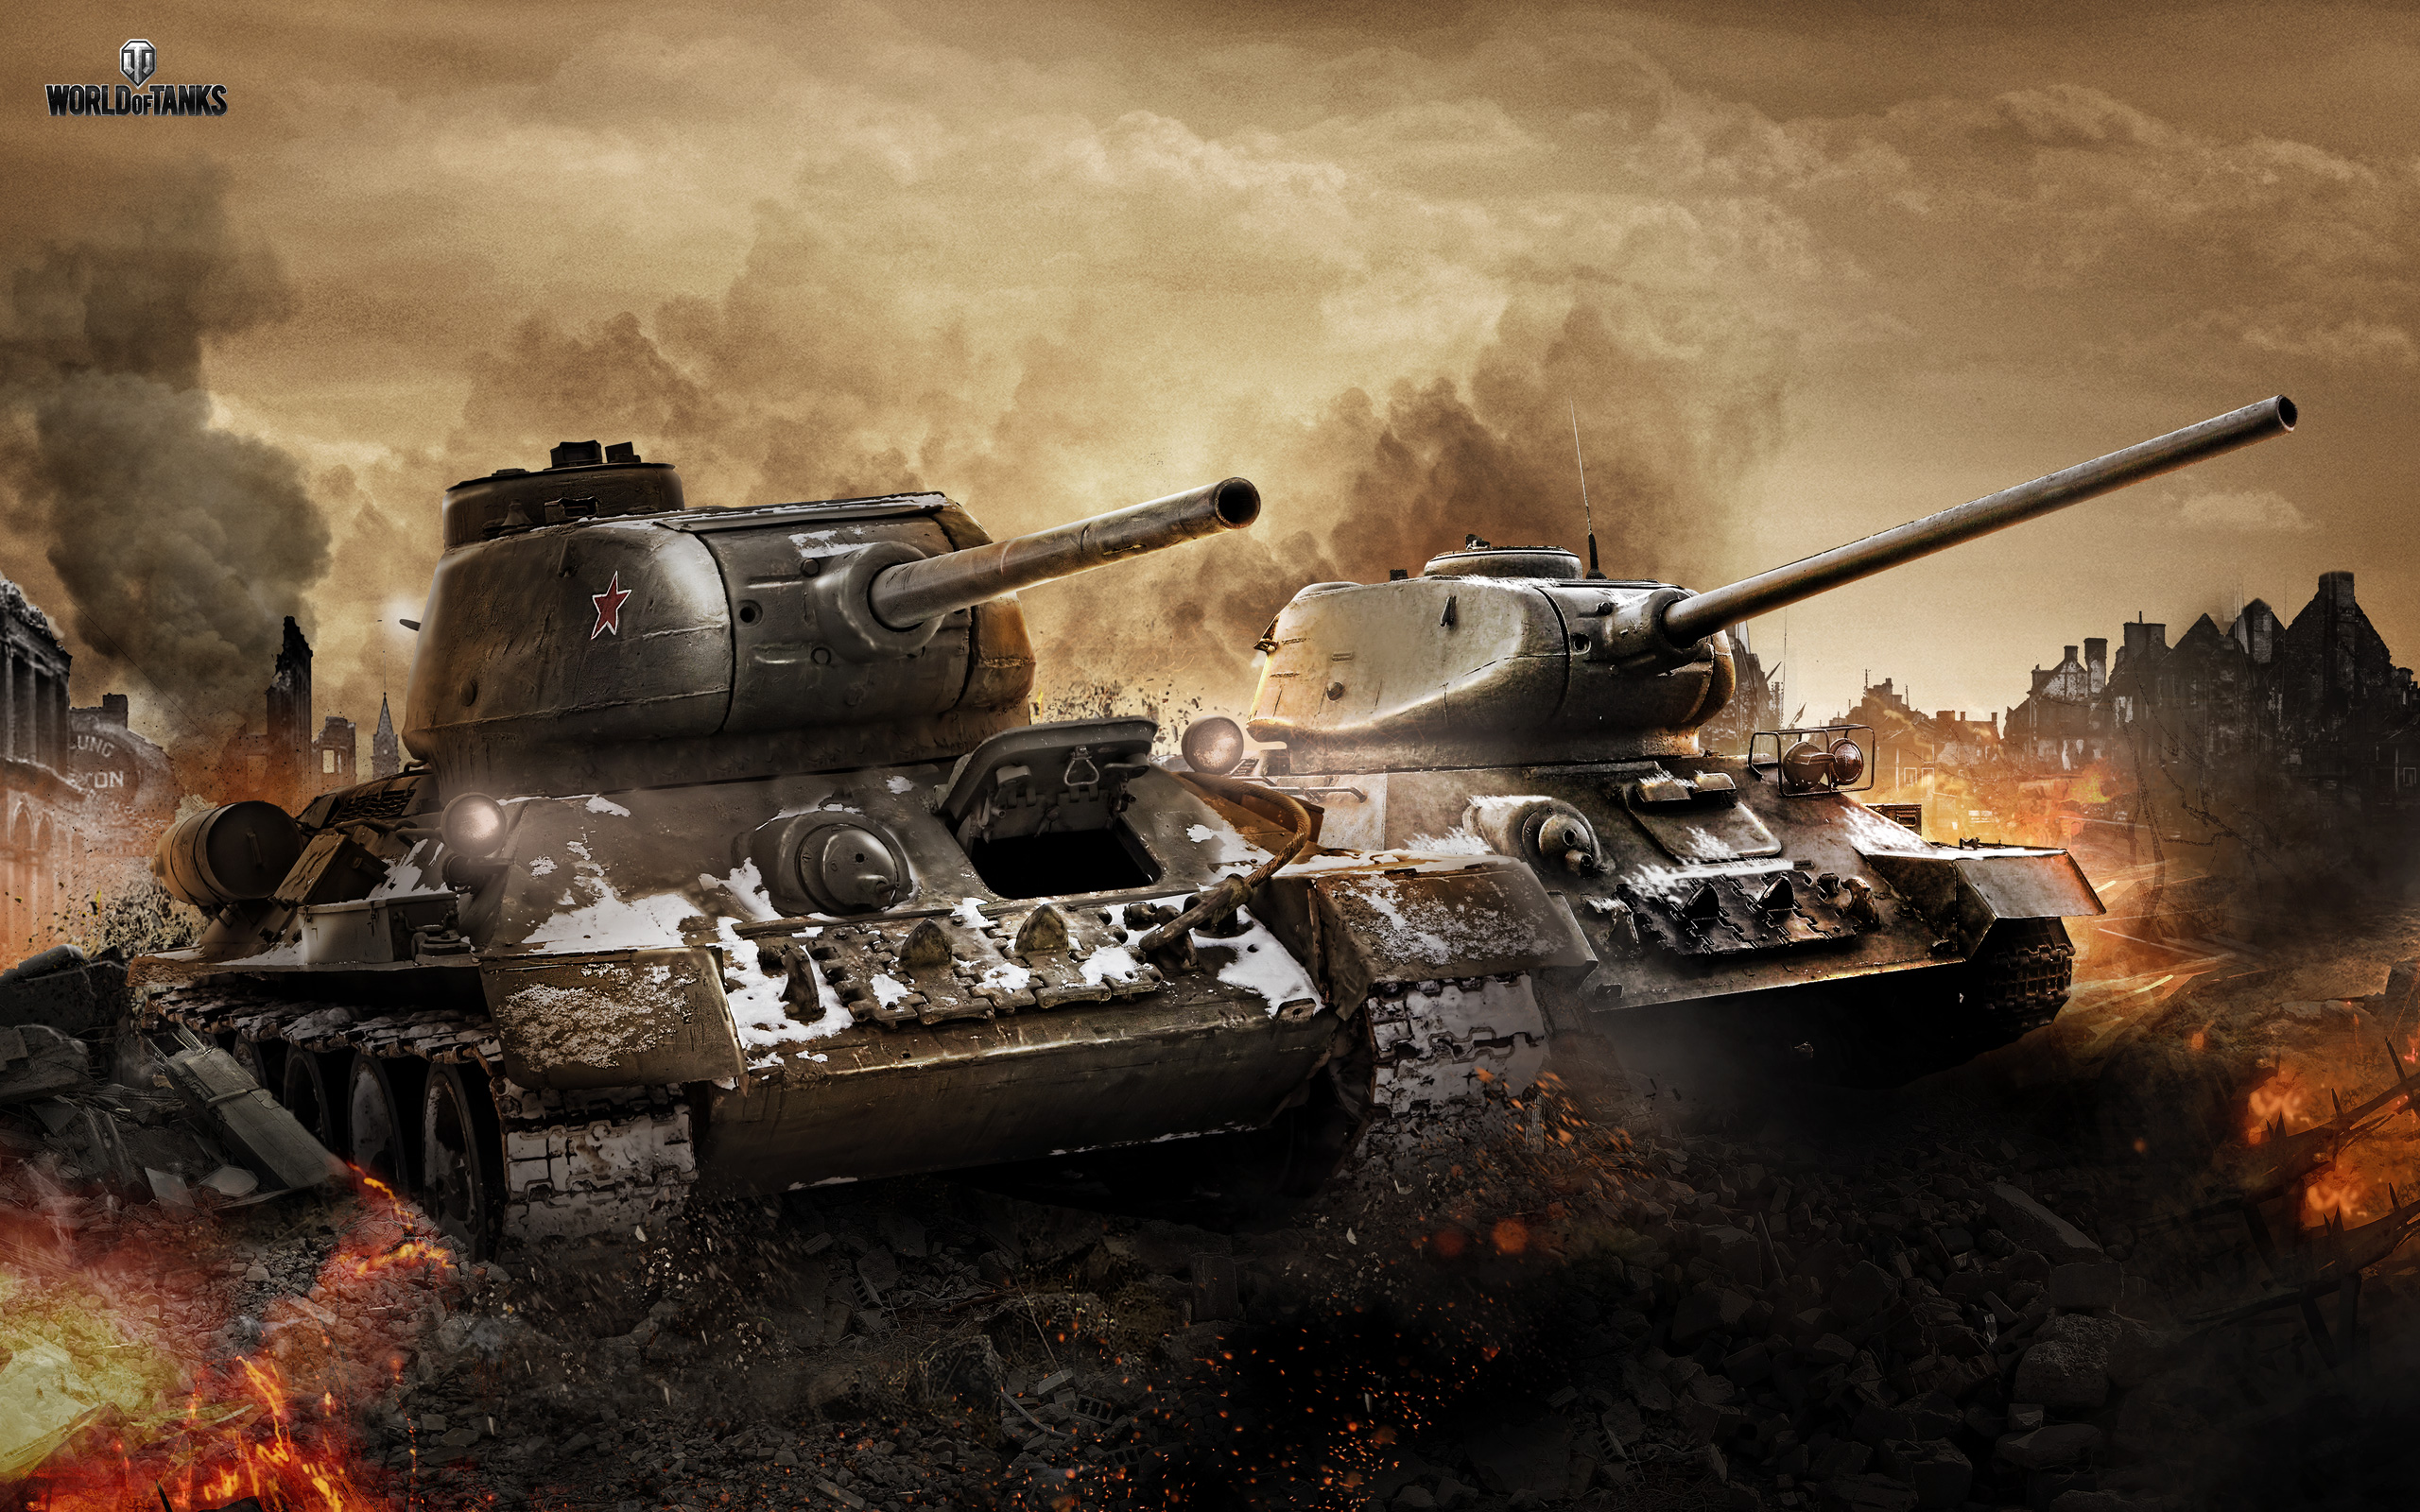 T 34 & T 34 85 in World of Tanks 806.15 Kb